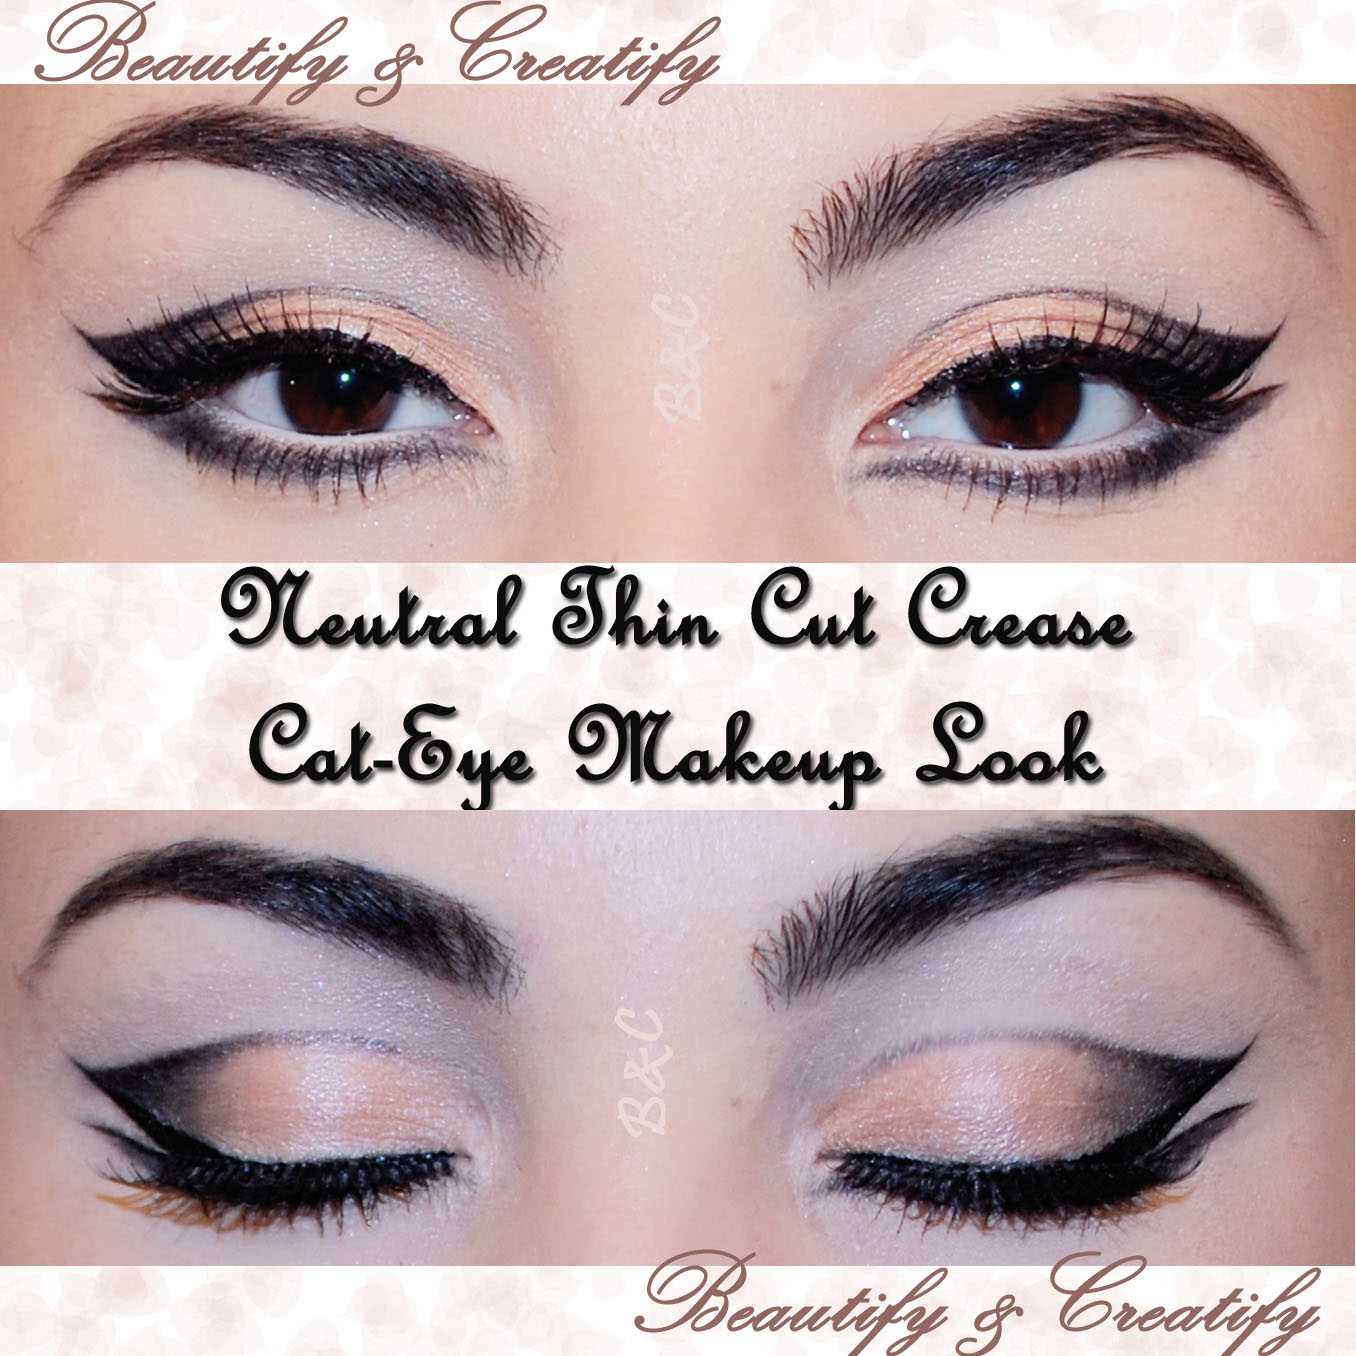 eye makeup » cut crease eye makeup - beautiful makeup ideas and